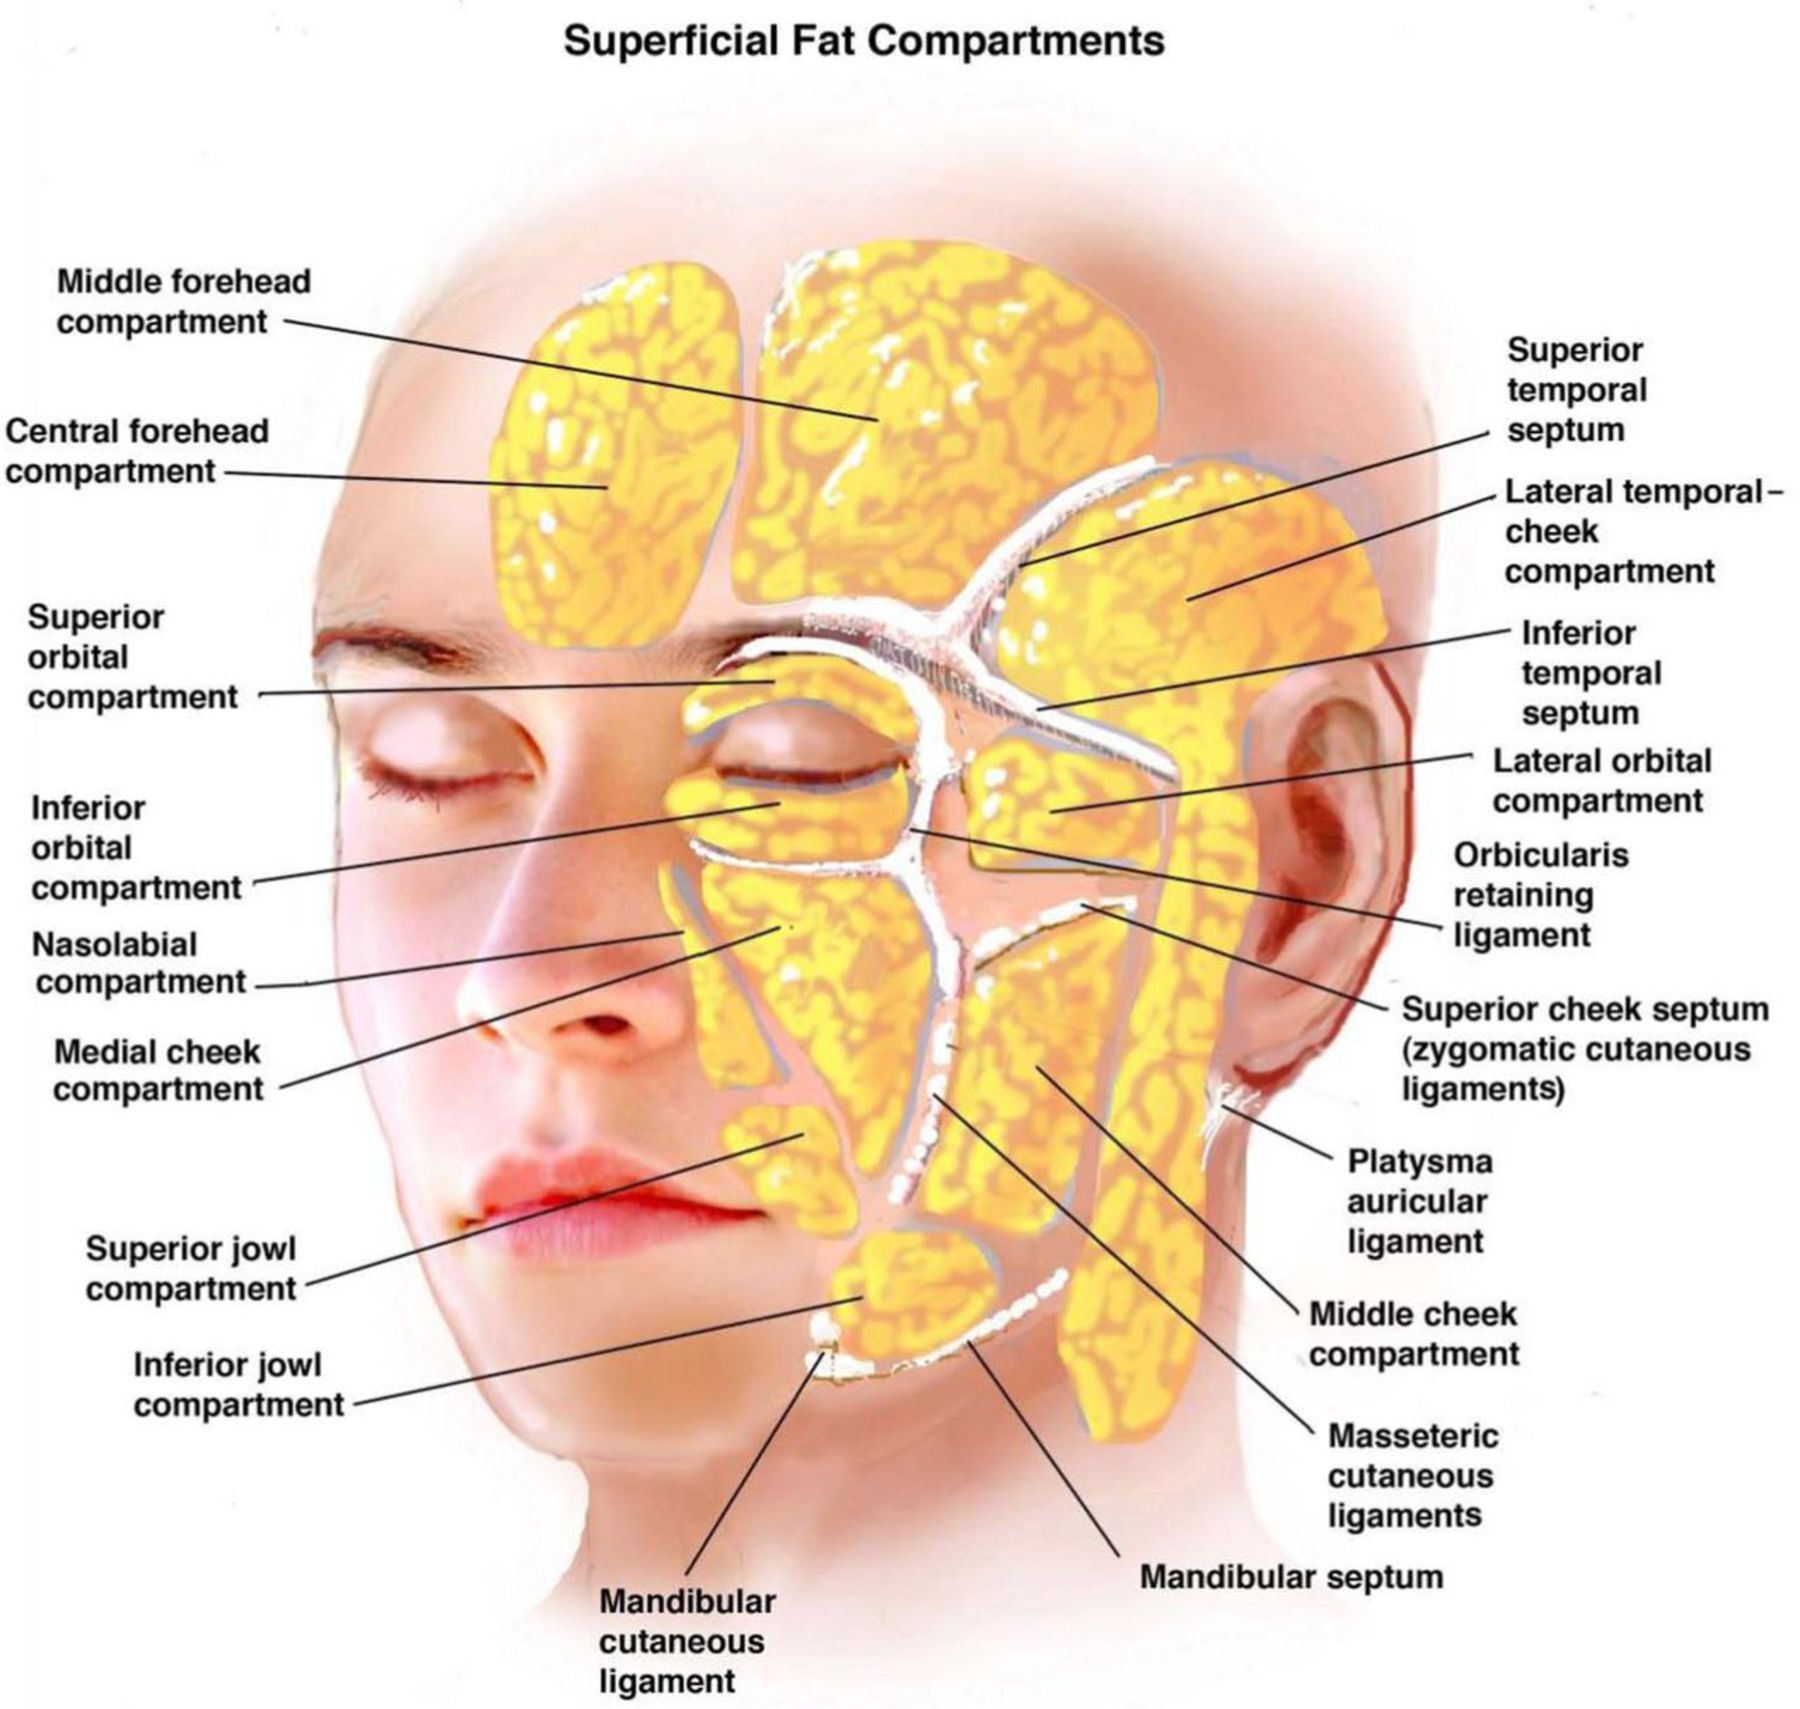 massage technique diagram aeon quad wiring ligaments of the face facial anatomy pinterest